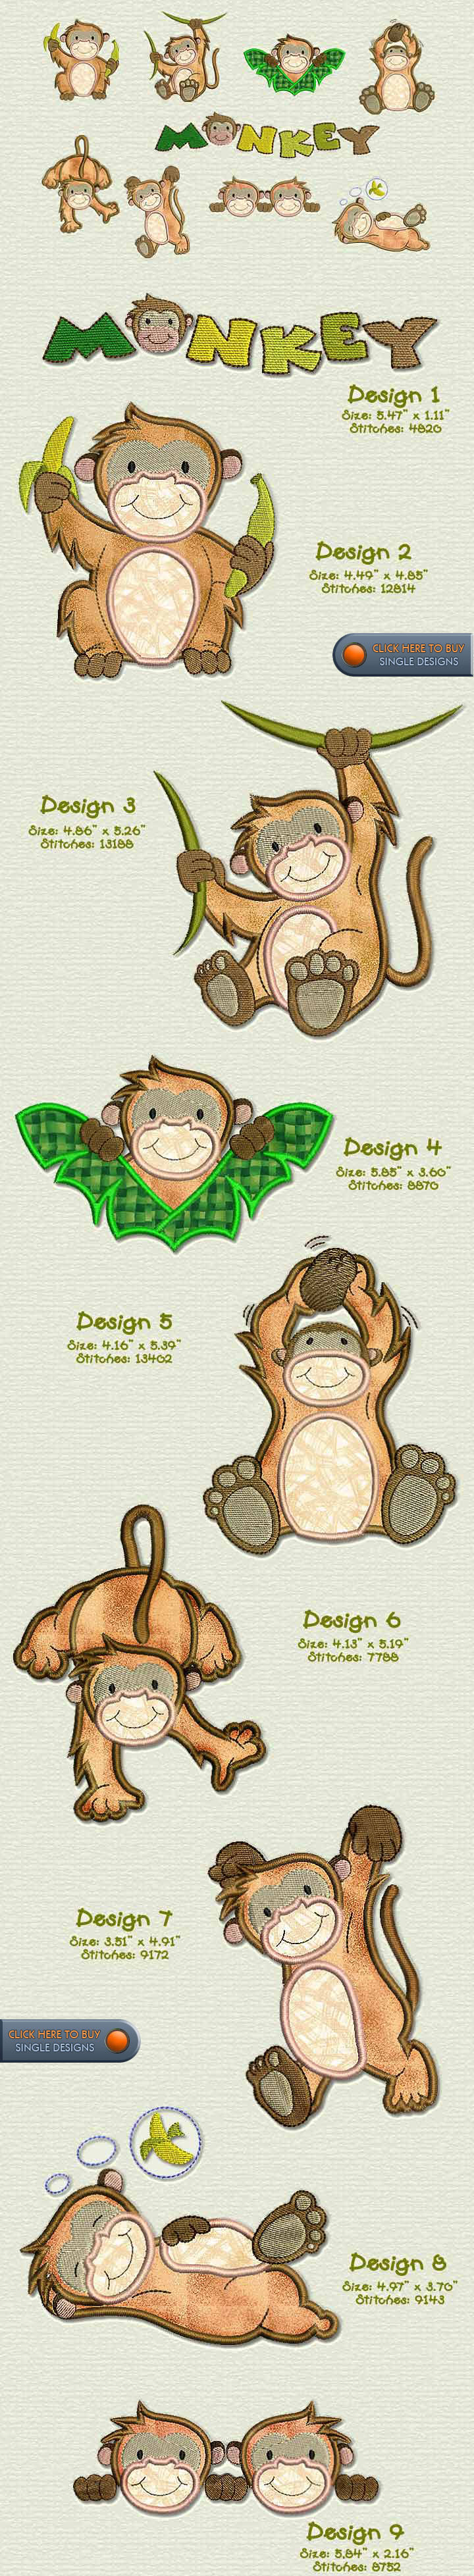 MONKEY Embroidery Designs Free Embroidery Design Patterns Applique